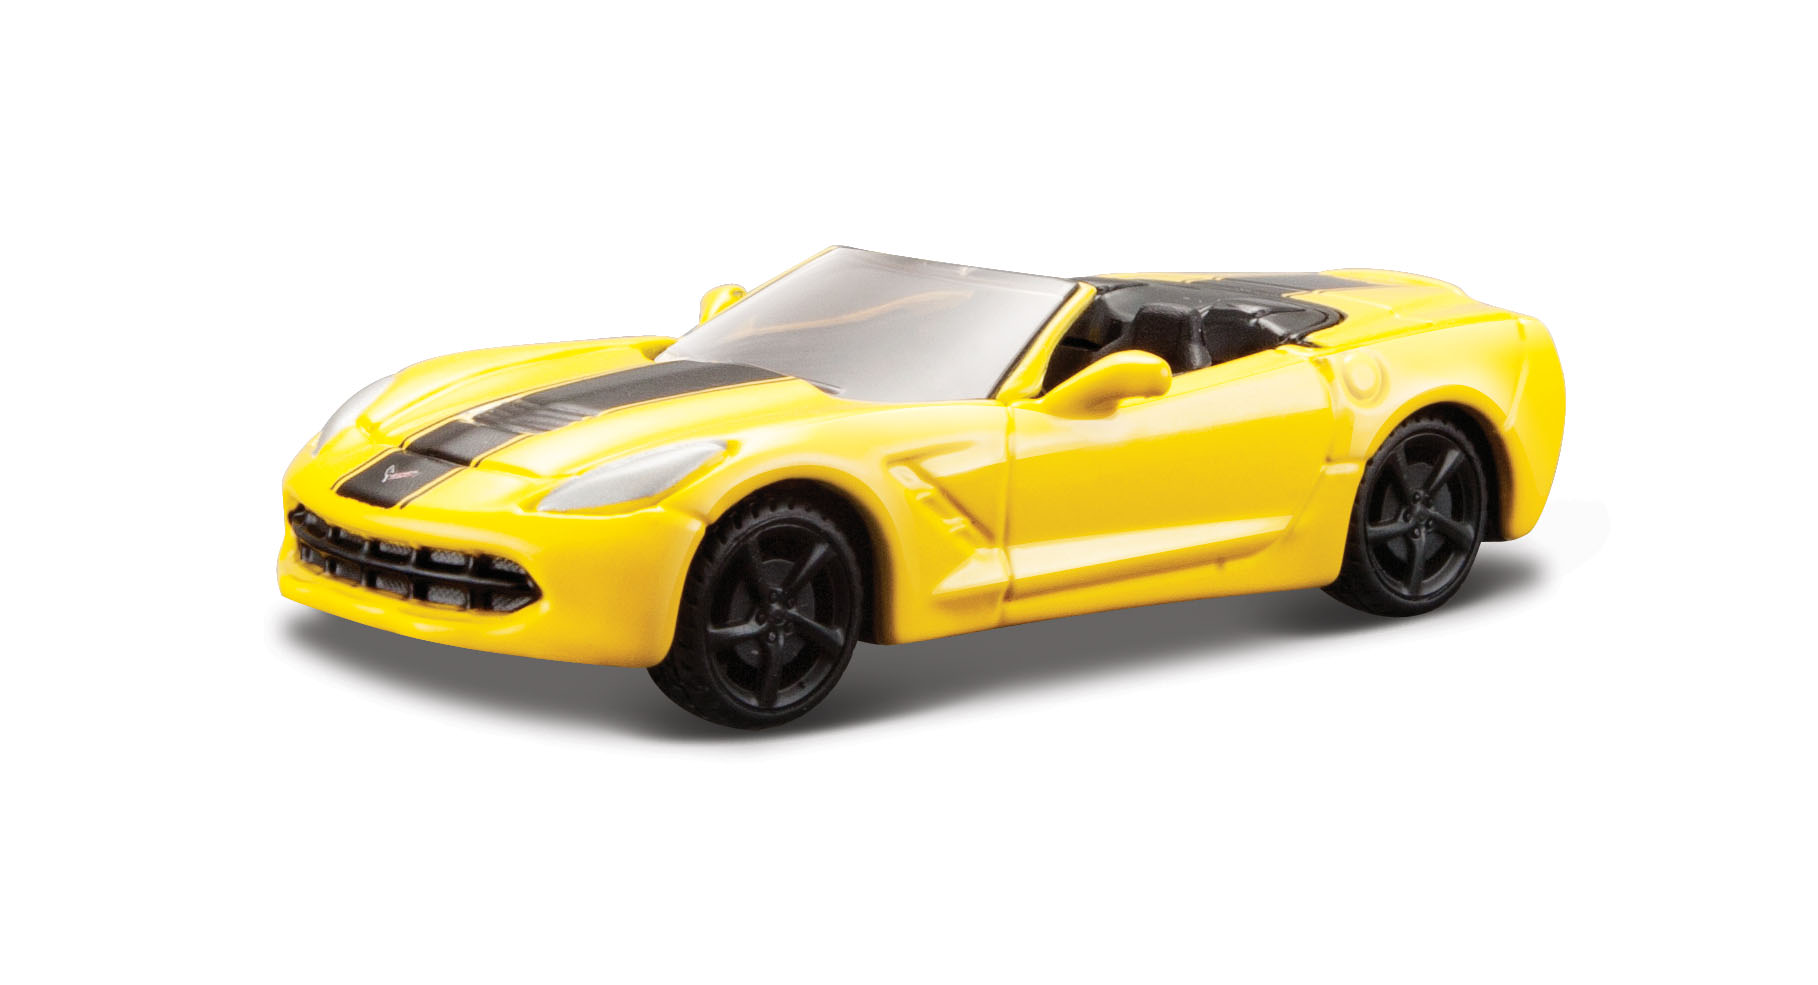 2014 Corvette Stingray Convertible